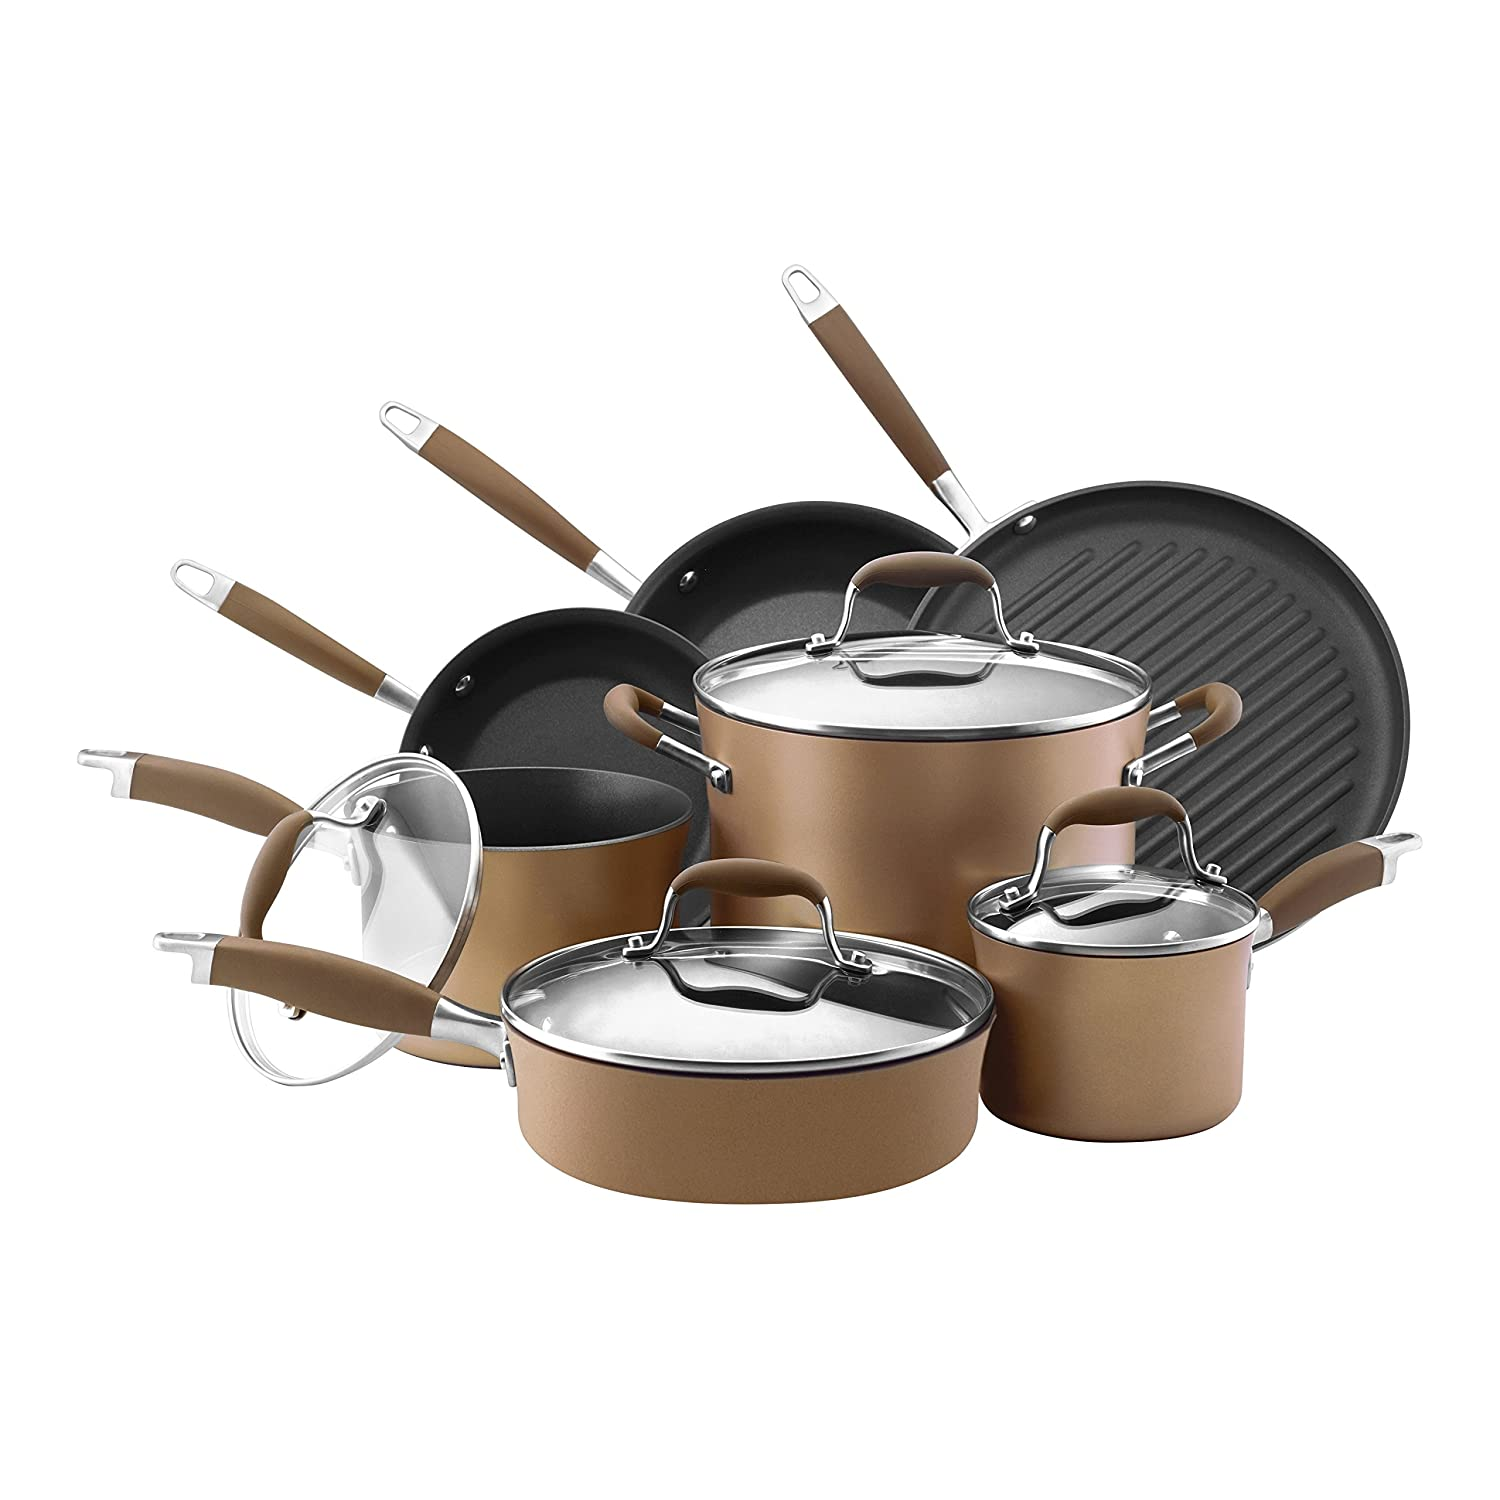 Anolon Cookware Set